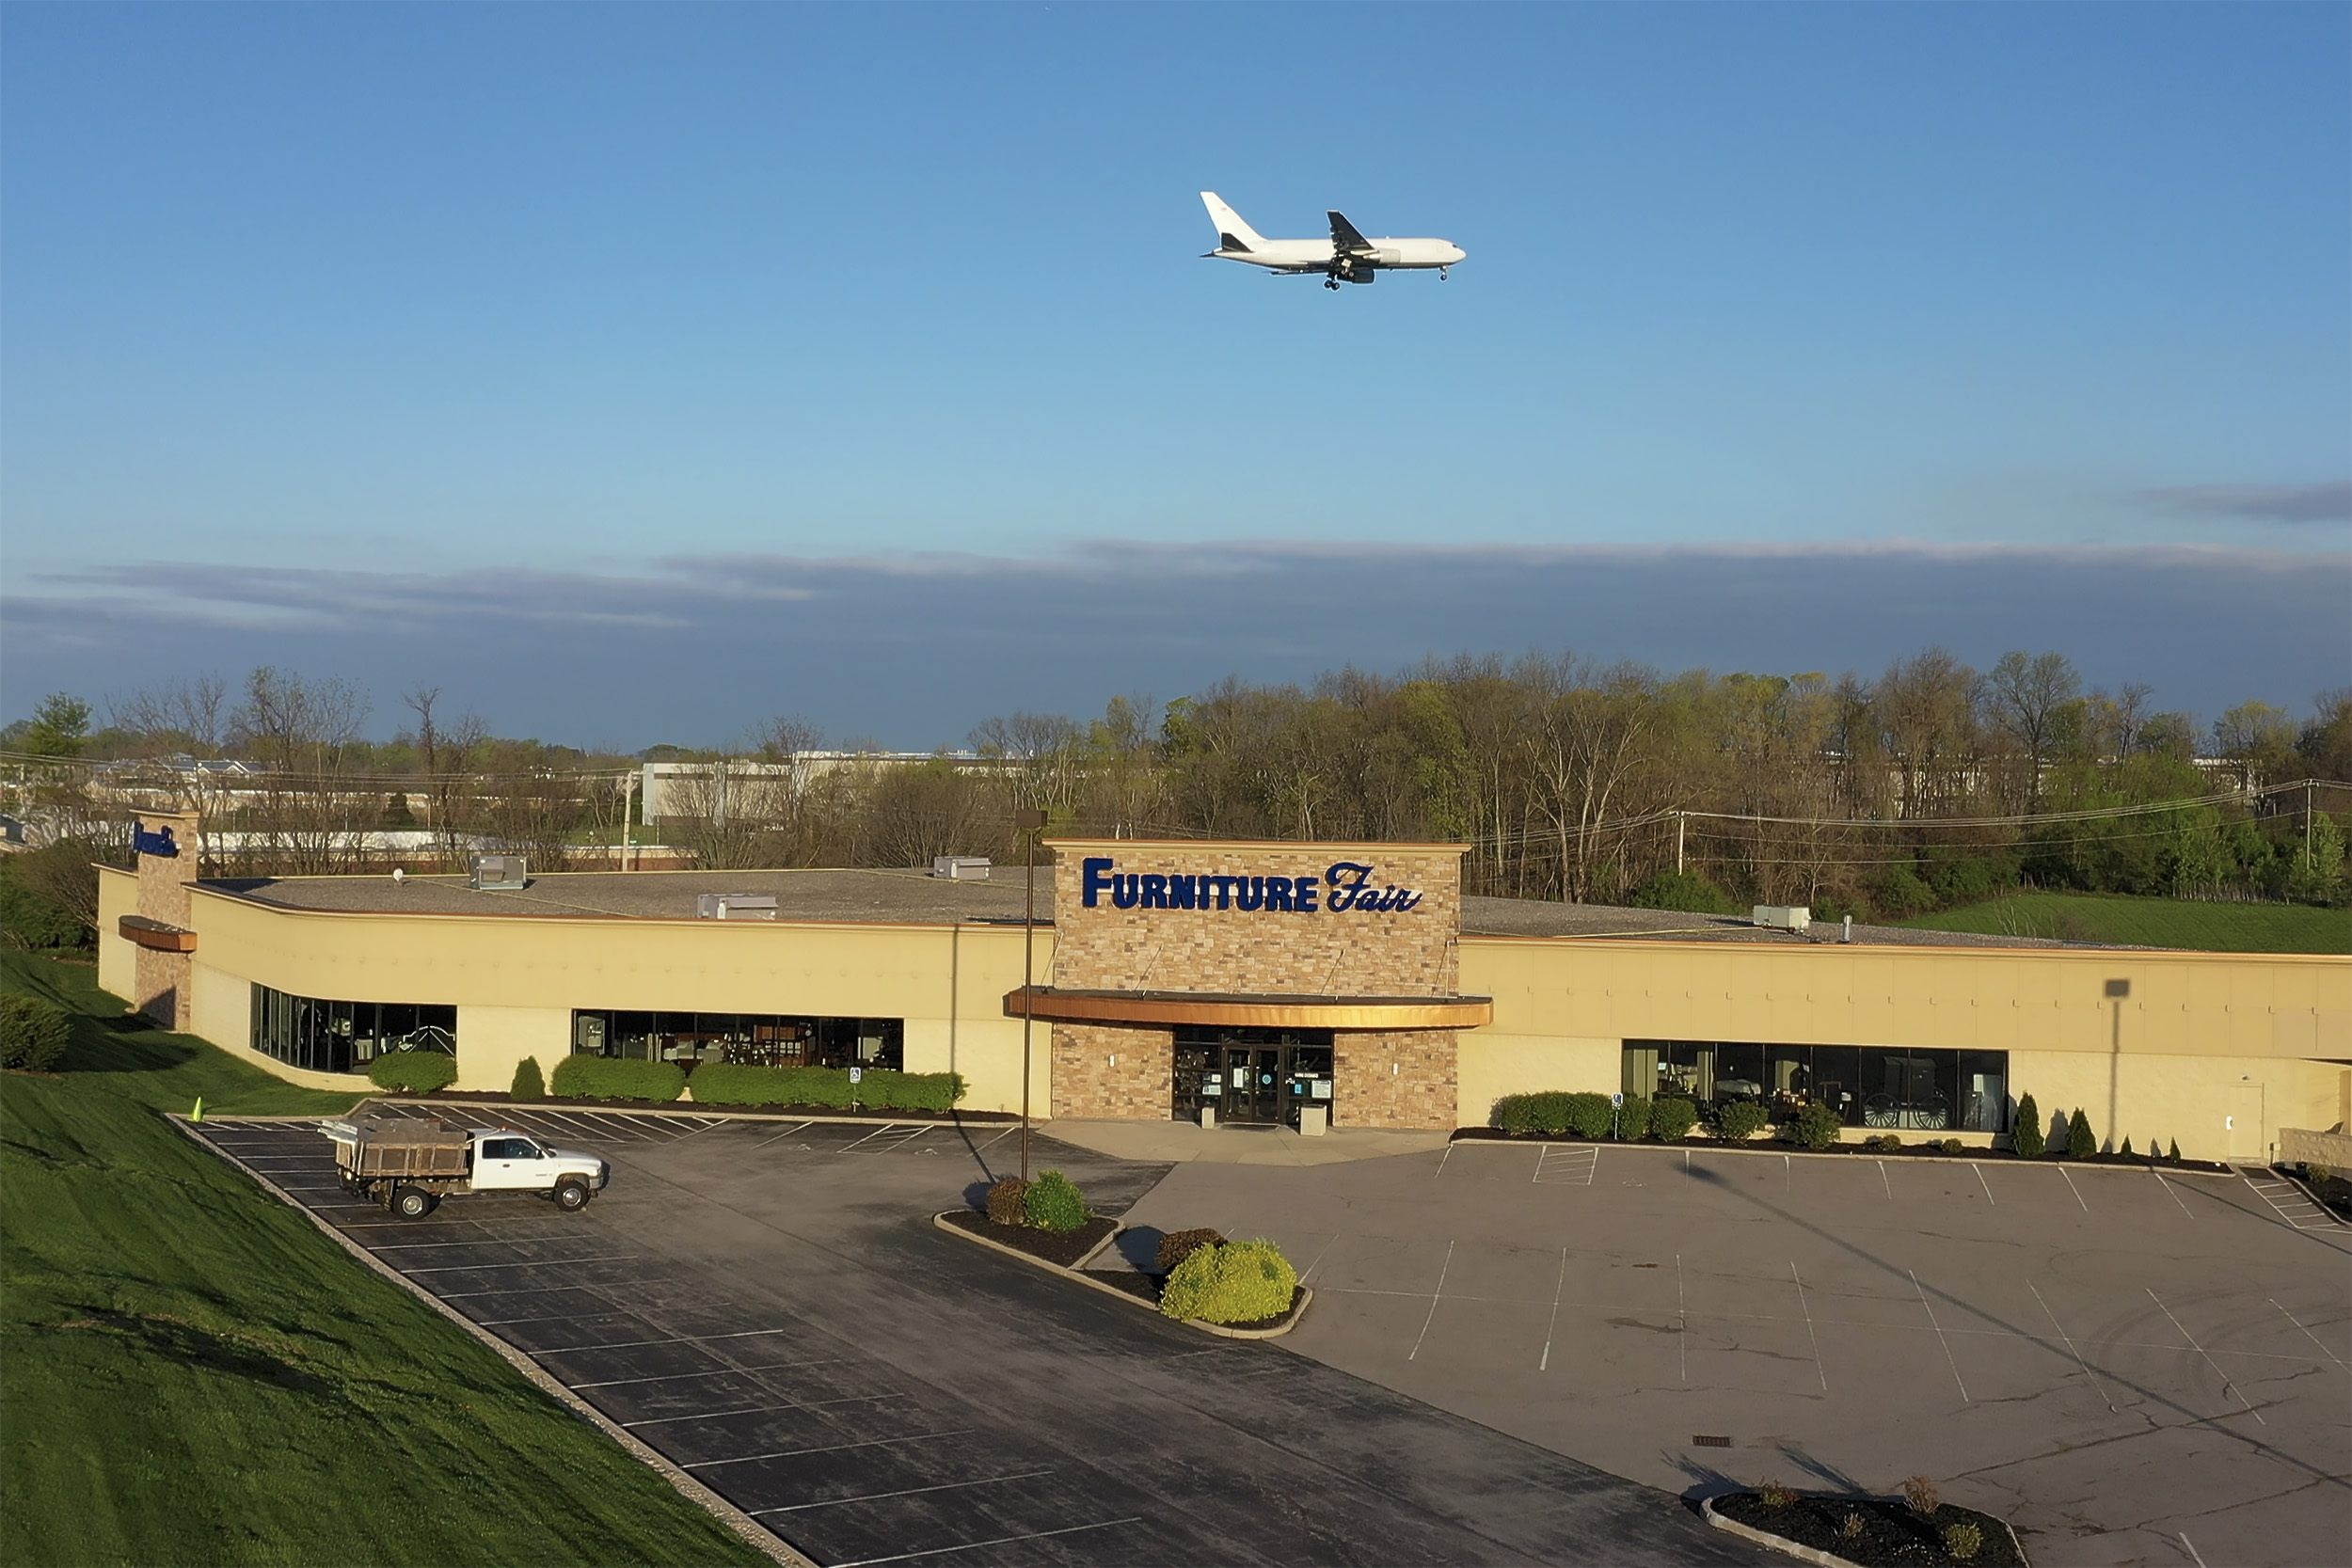 Exterior Drone shot of Furniture Store with airplane flyover